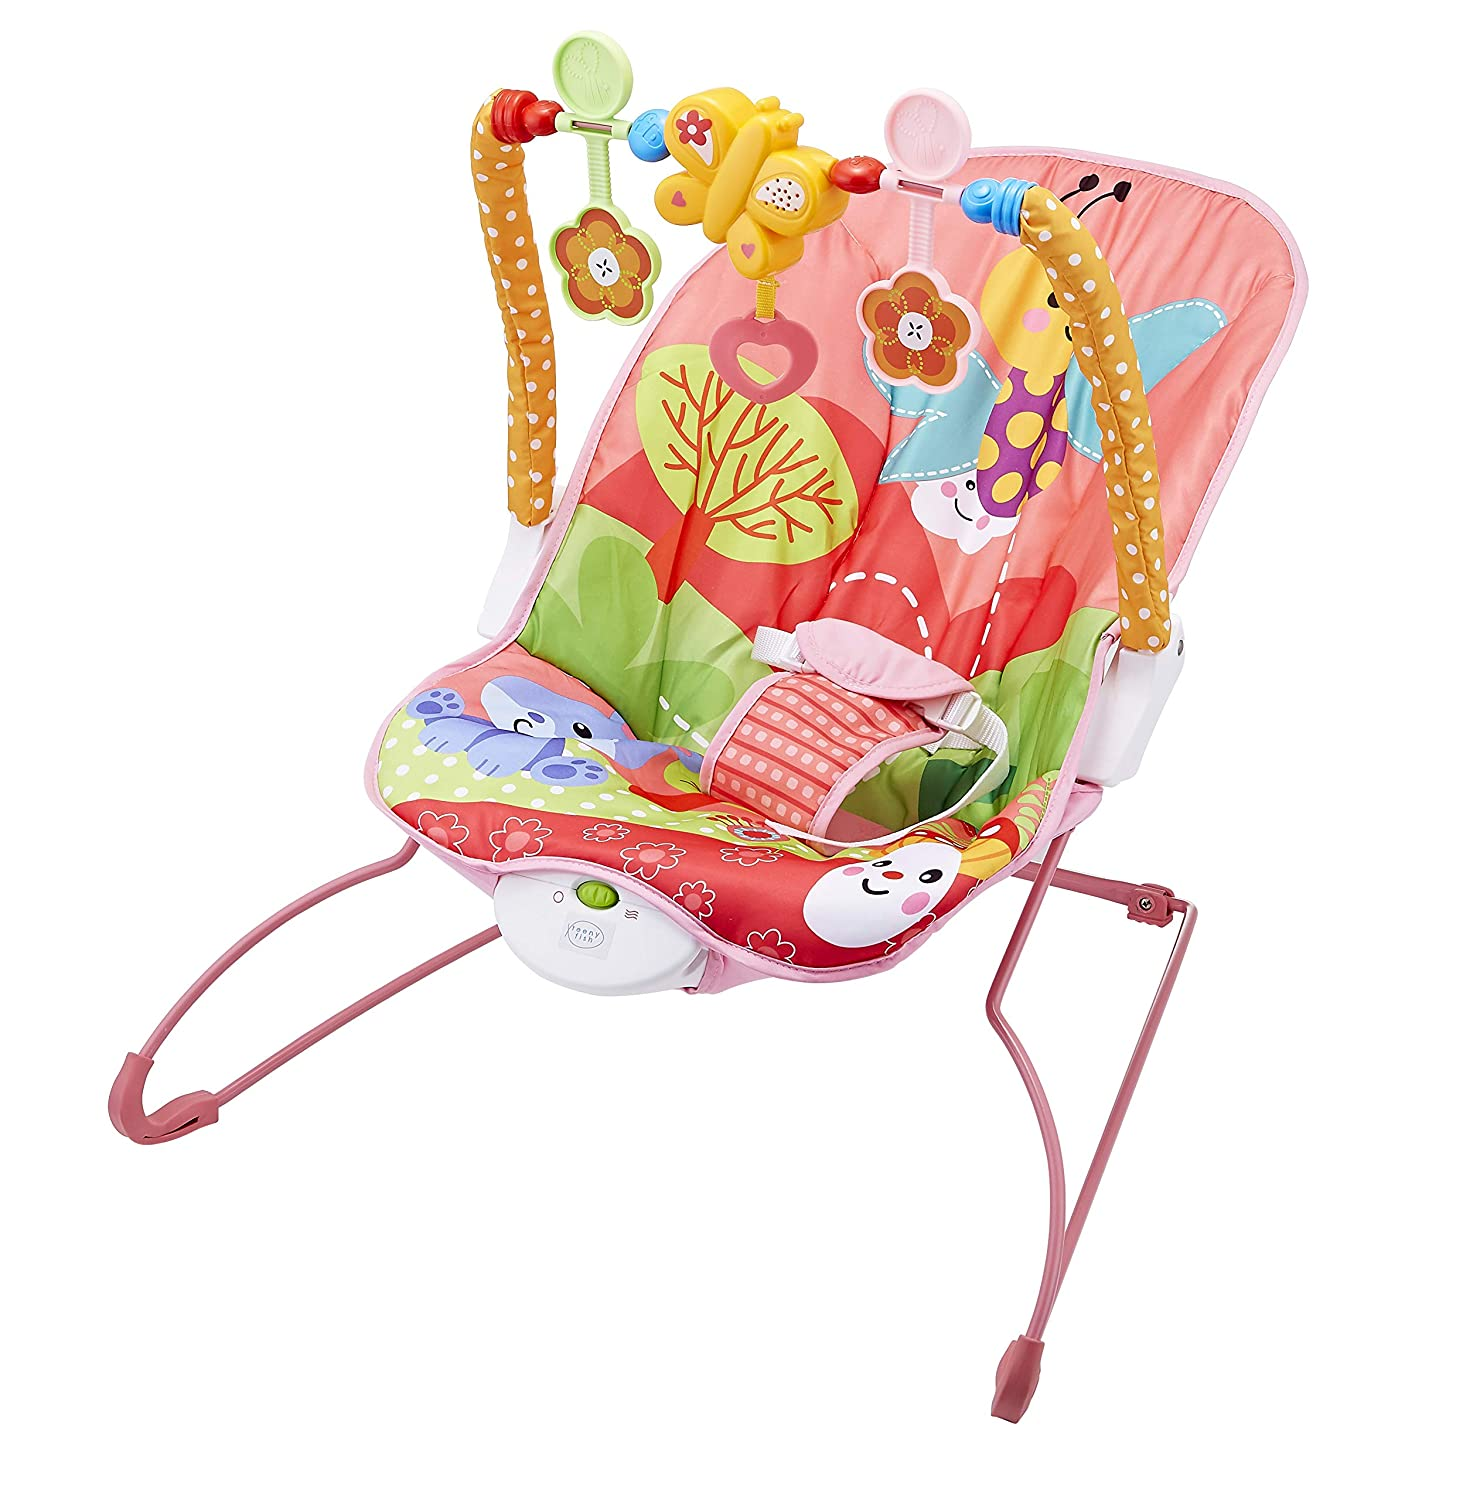 Teeny Fish Baby Bouncer Rocker with Soothing Vibrations and Musical Box Pink